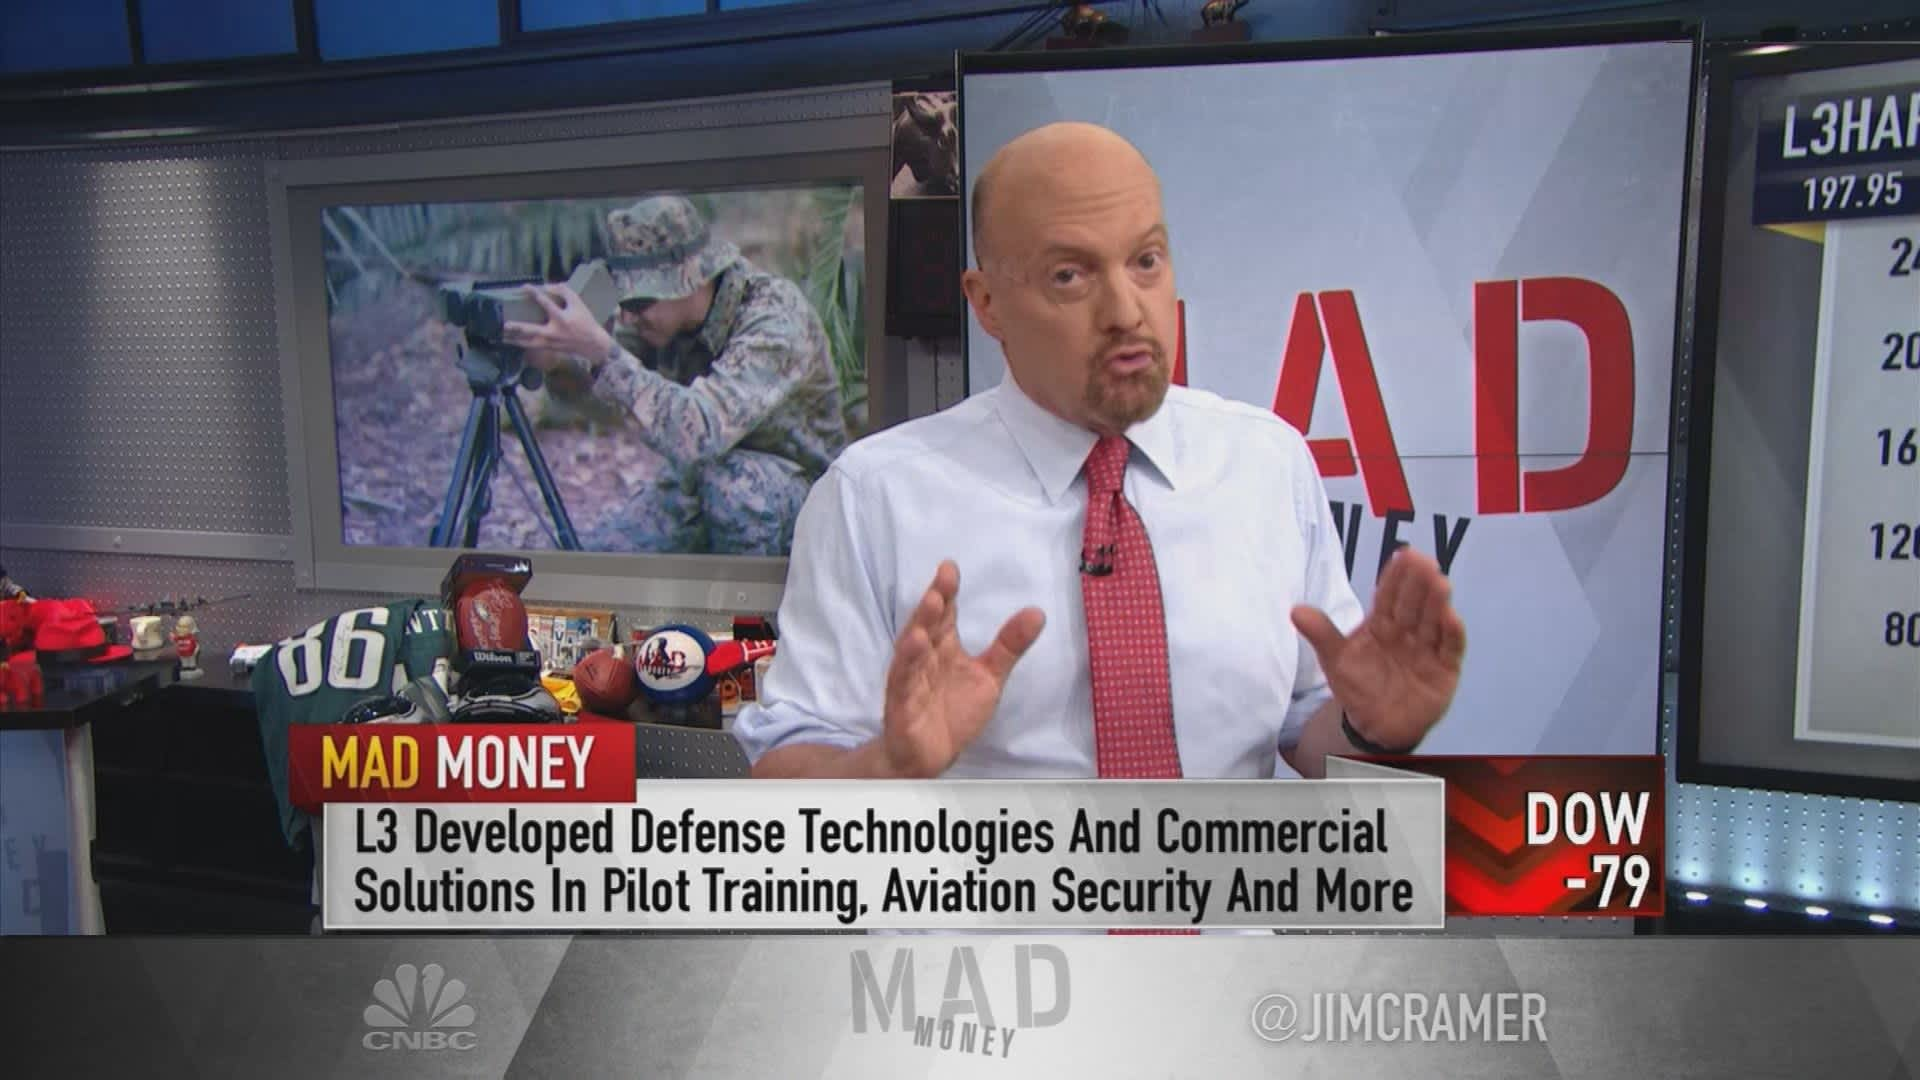 L3Harris the best defense play to own, says Jim Cramer